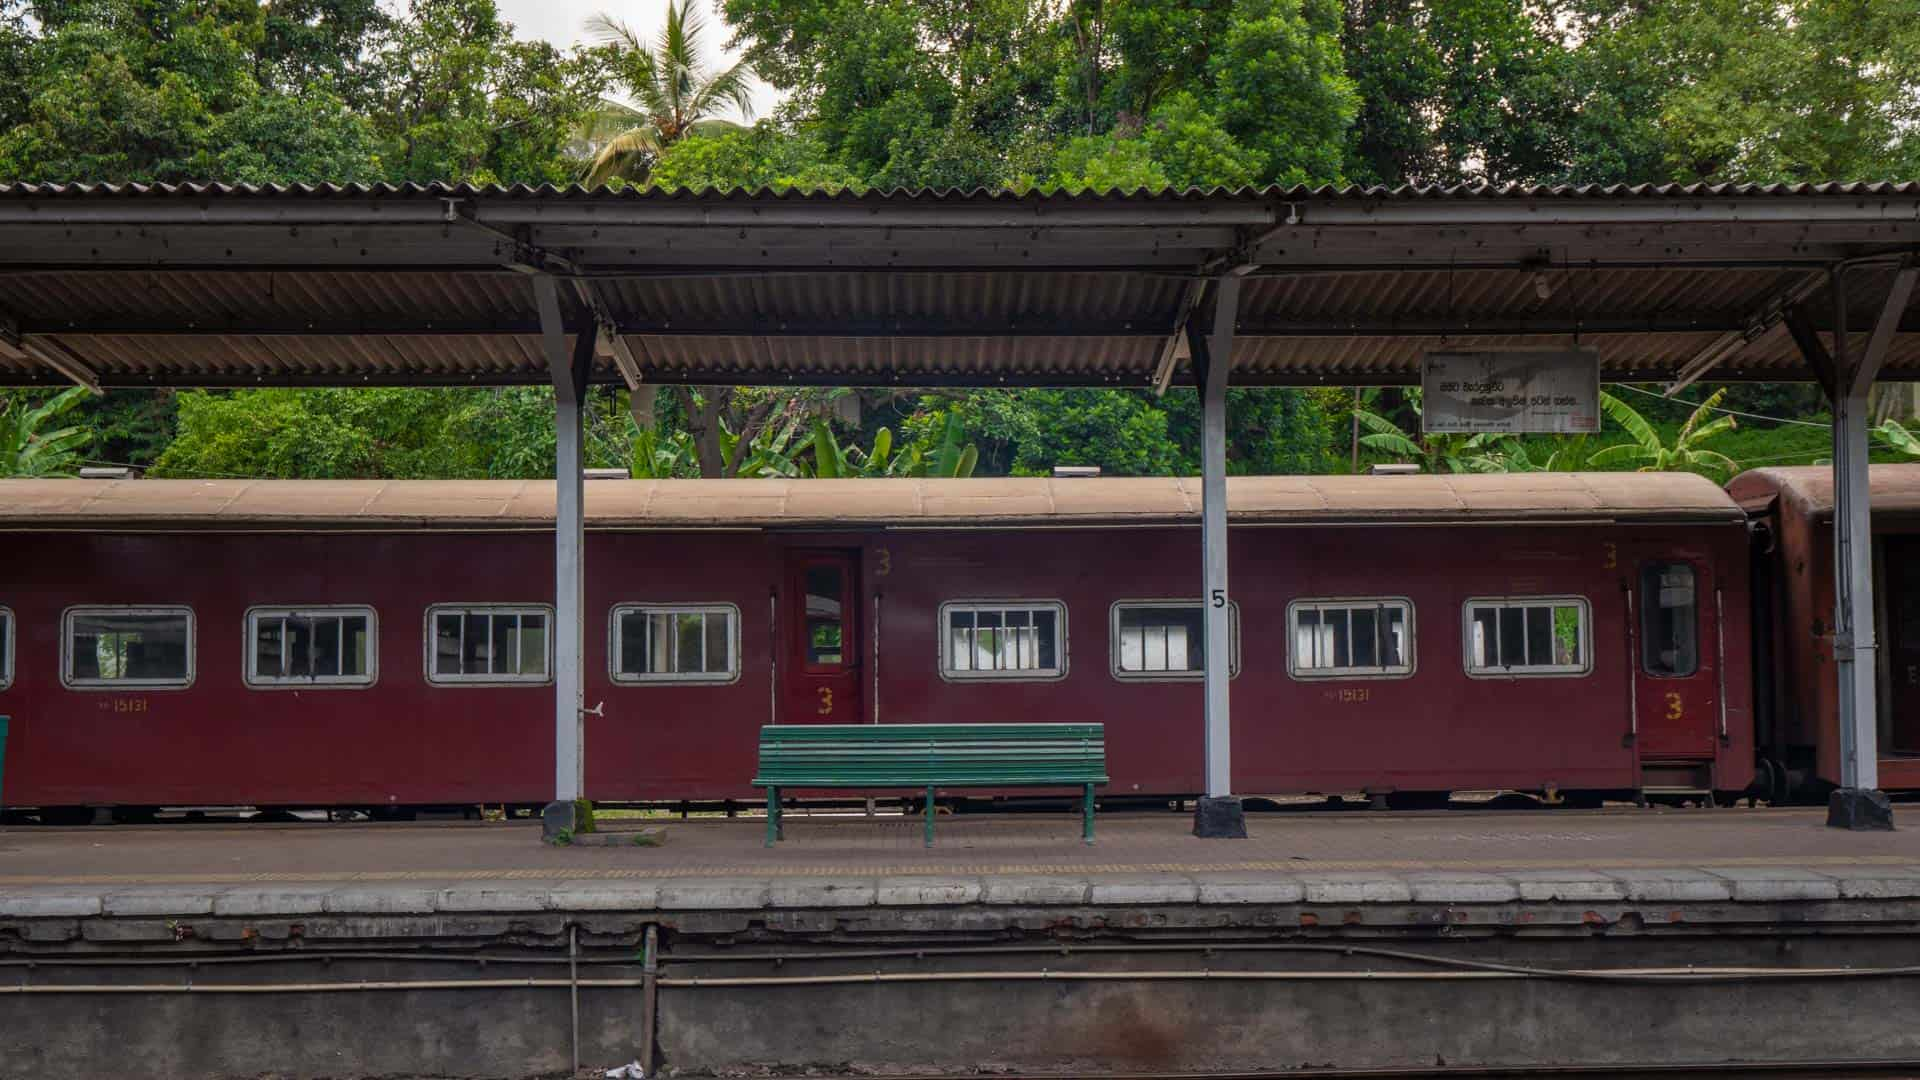 colombo-kandy-train